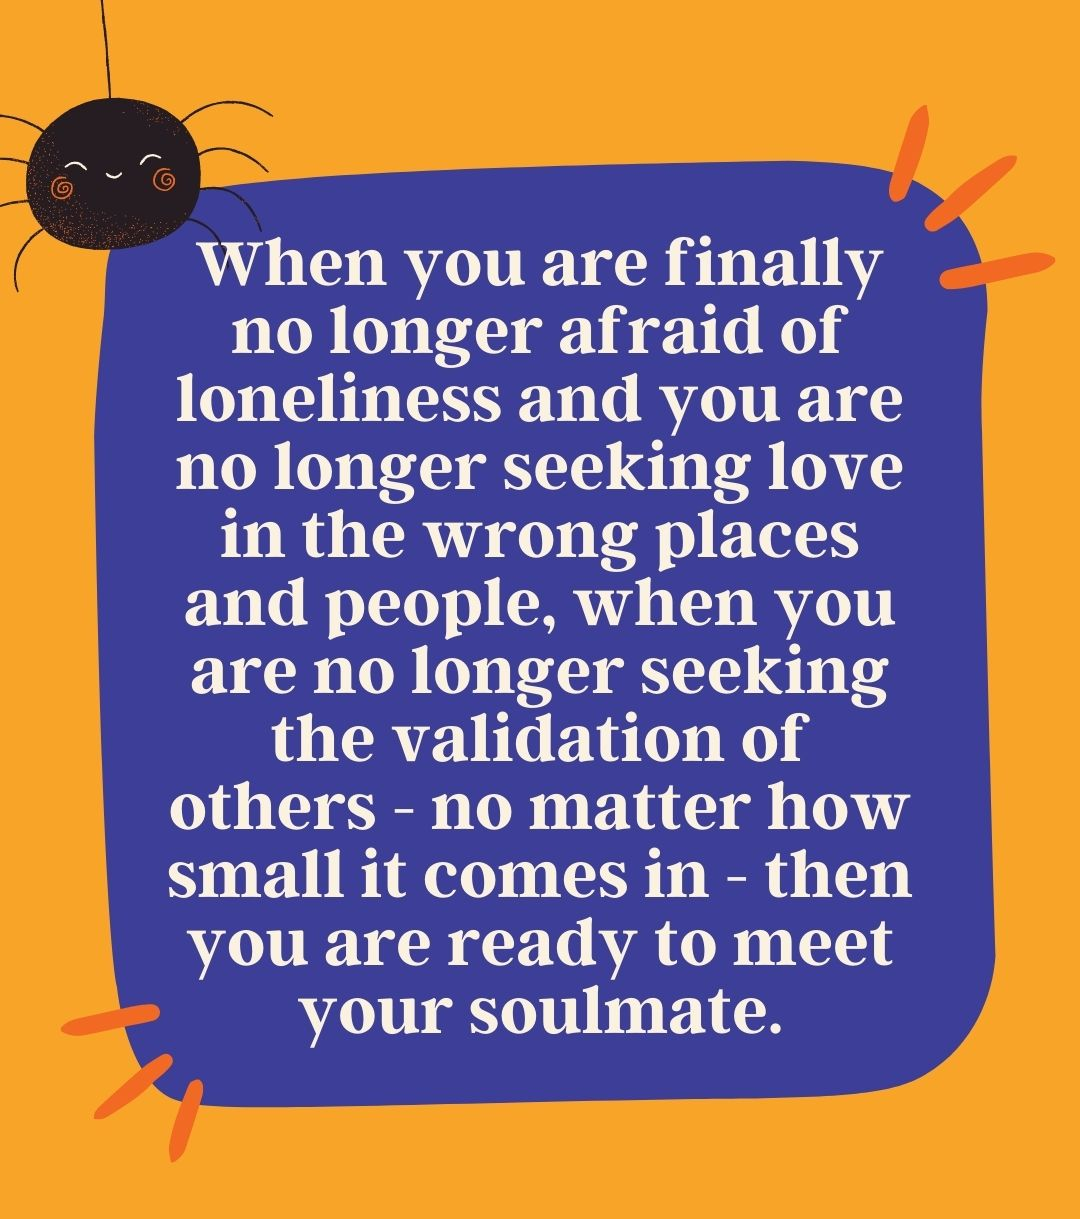 When you are finally no longer afraid of loneliness and you are no longer seeking love in the wrong places and people, when you are no longer seeking the validation of others - no matter how small it comes in - then you are ready to meet your soulmate.